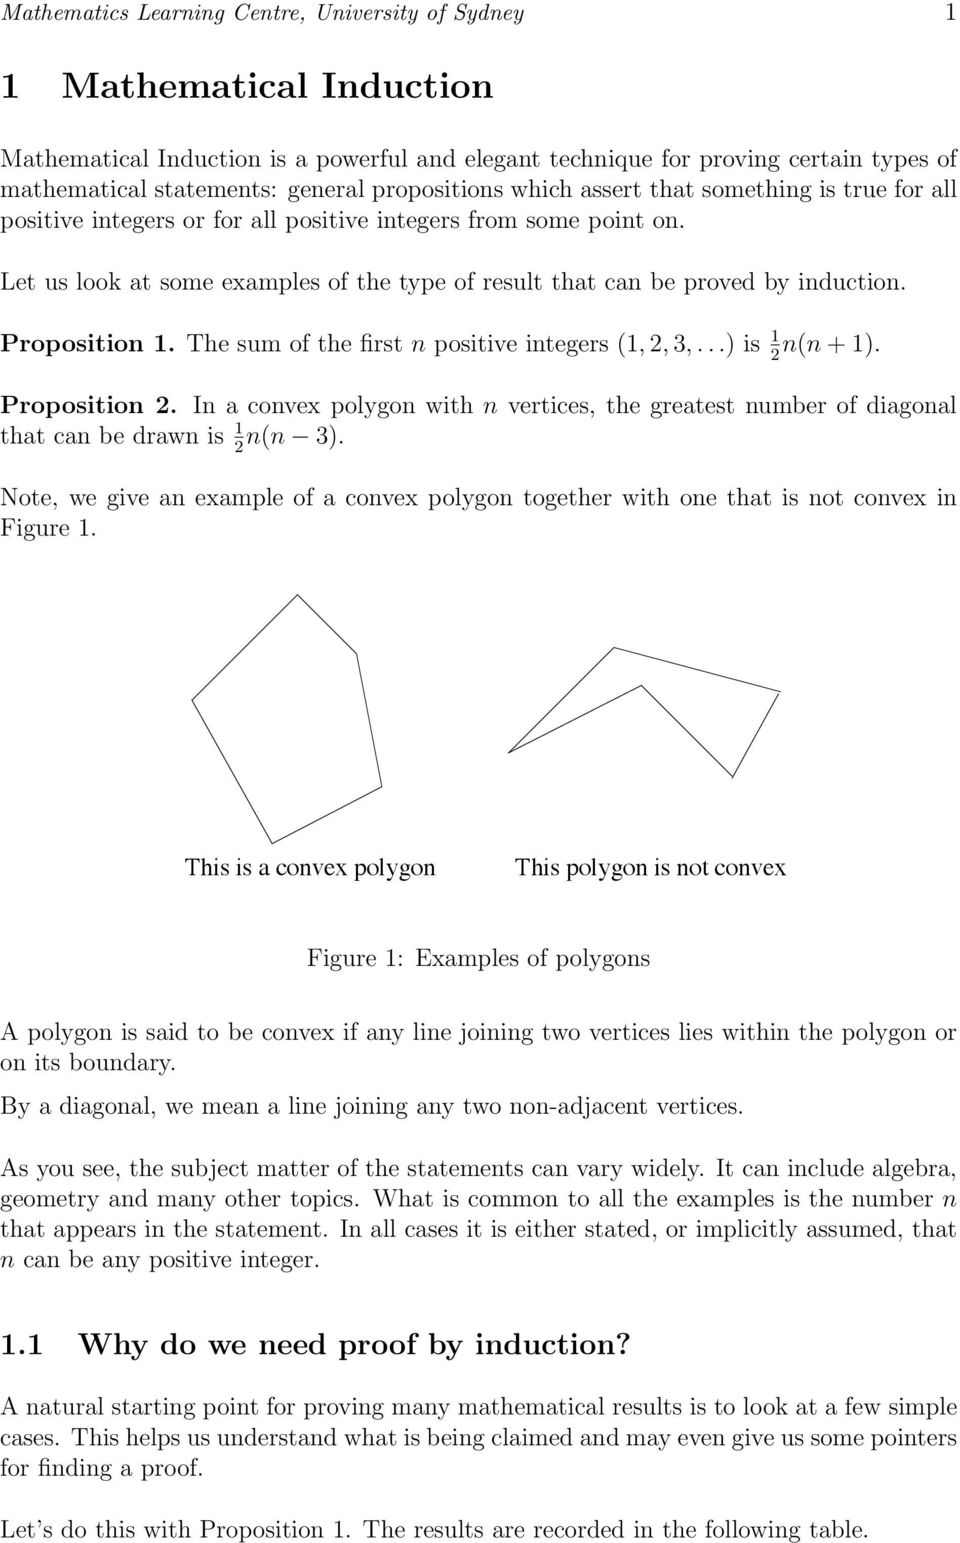 Let us look at some examples of the type of result that can be proved by induction. Proposition 1. The sum of the first n positive integers (1,,,...)is 1 n(n + 1). Proposition. In a convex polygon with n vertices, the greatest number of diagonal that can be drawn is 1 n(n ).